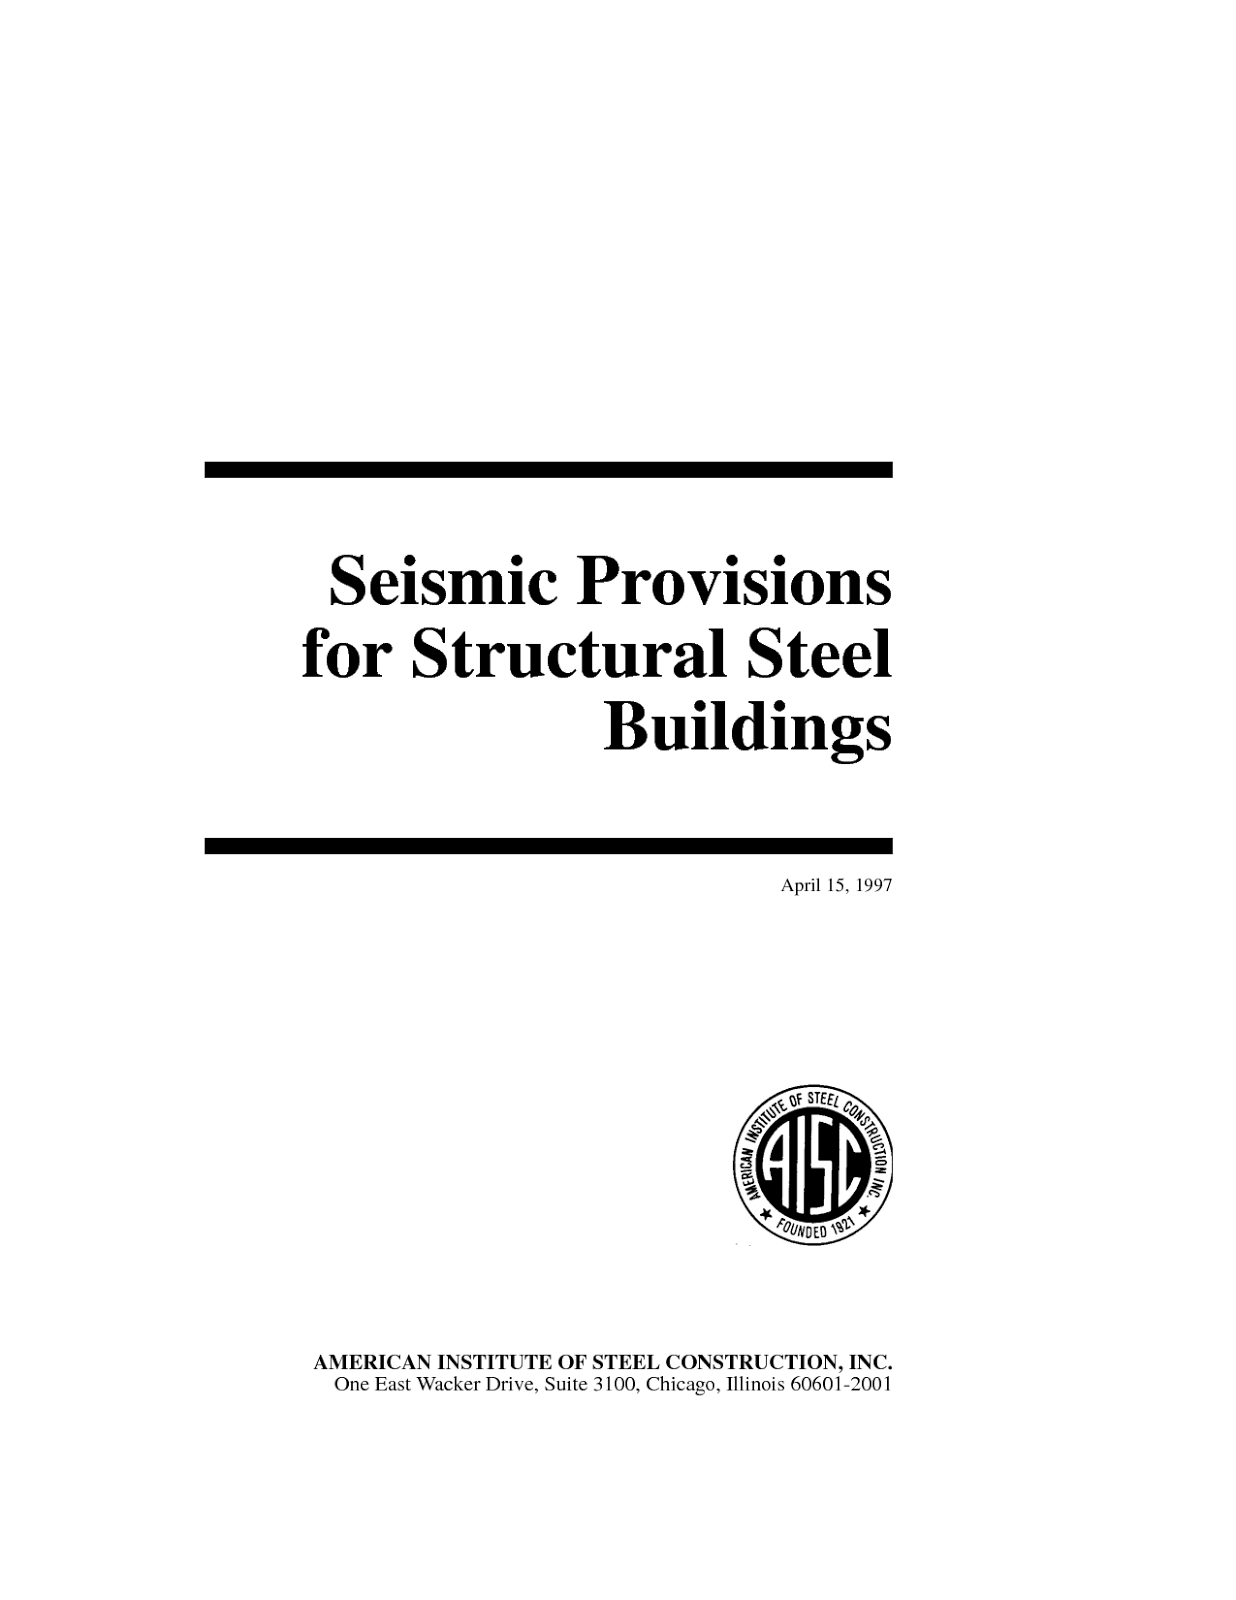 Seismic Provisions for structural steel buildings. (2005